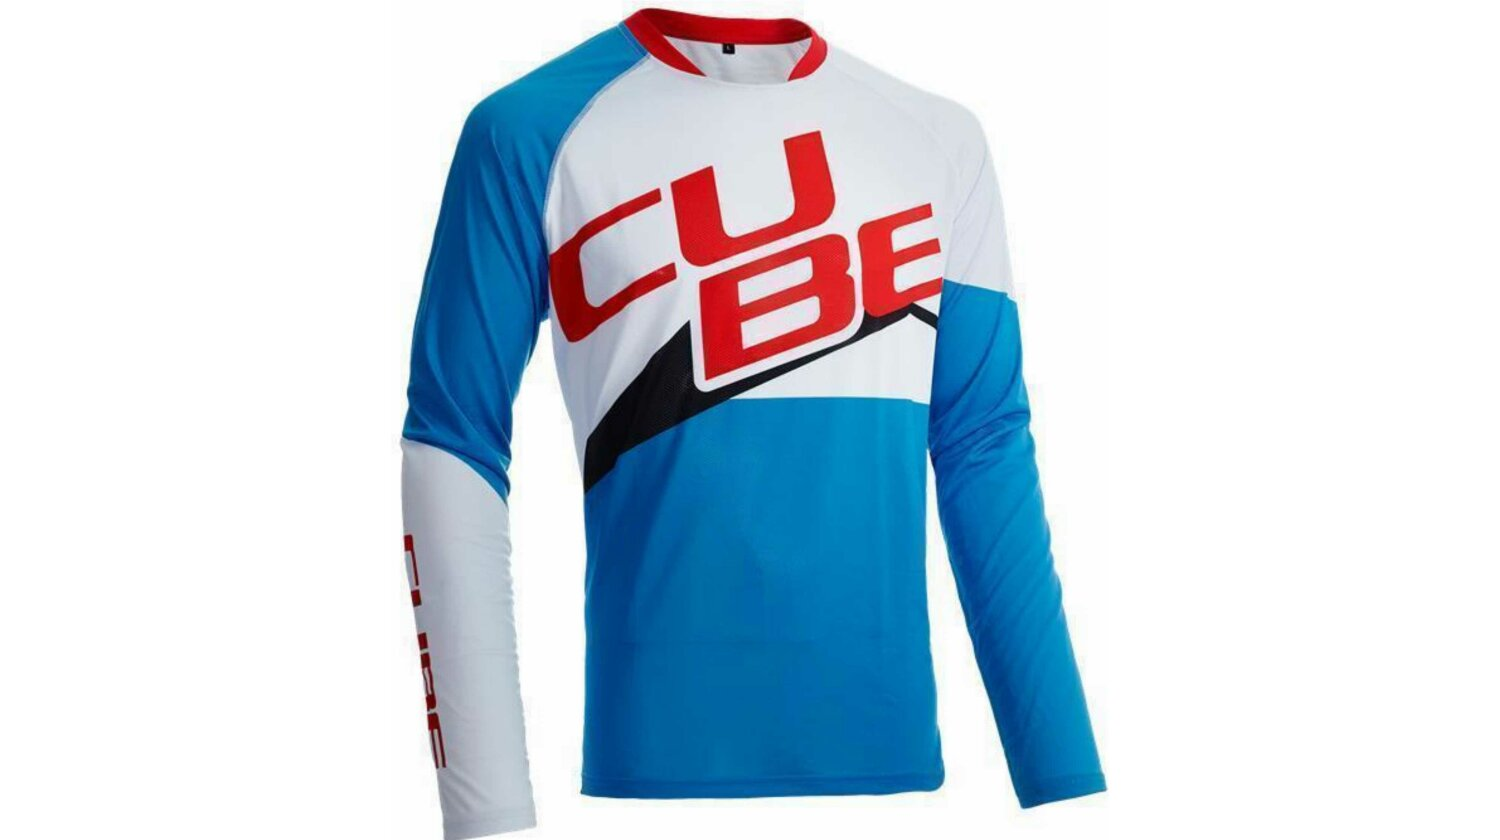 Cube ACTION Rundhalstrikot Pilot langarm white�n�blue�n�red